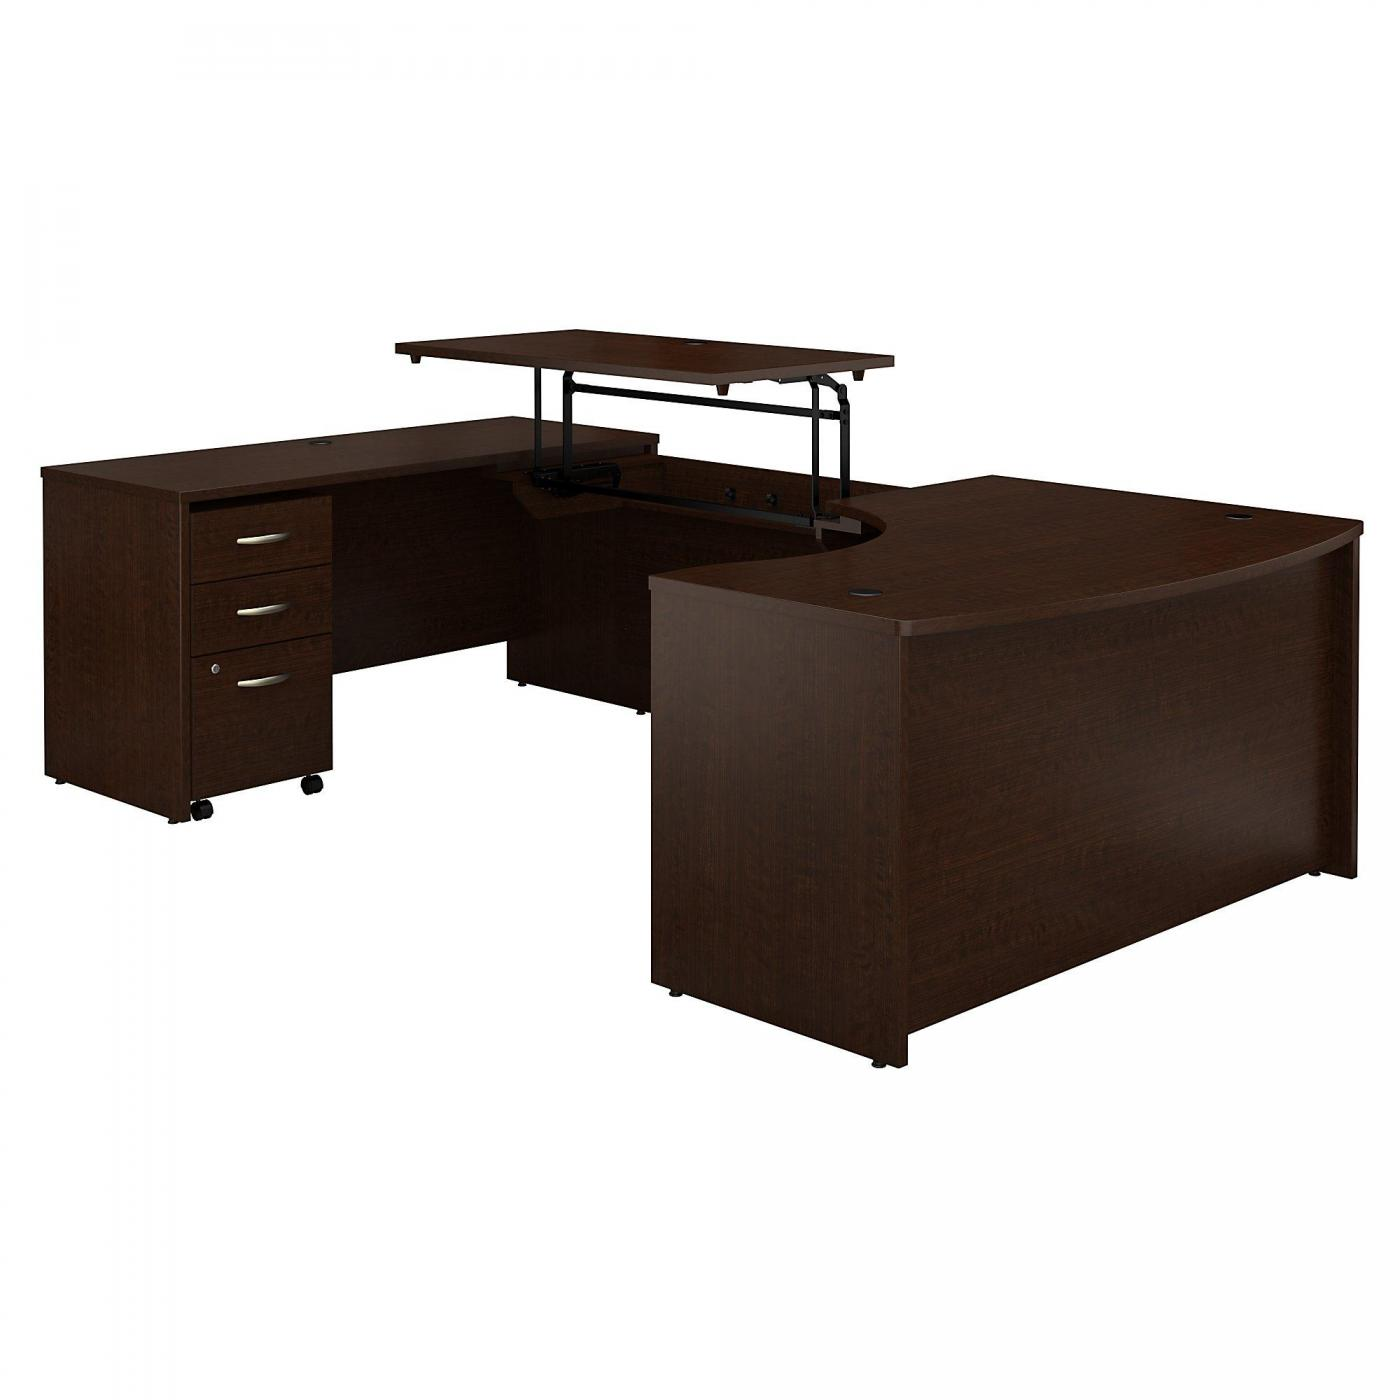 <font color=#c60><b>BUSH BUSINESS FURNITURE SERIES C 60W X 43D RIGHT HAND 3 POSITION SIT TO STAND U SHAPED DESK WITH MOBILE FILE CABINET. FREE SHIPPING. VIDEO:</font></b></font></b>